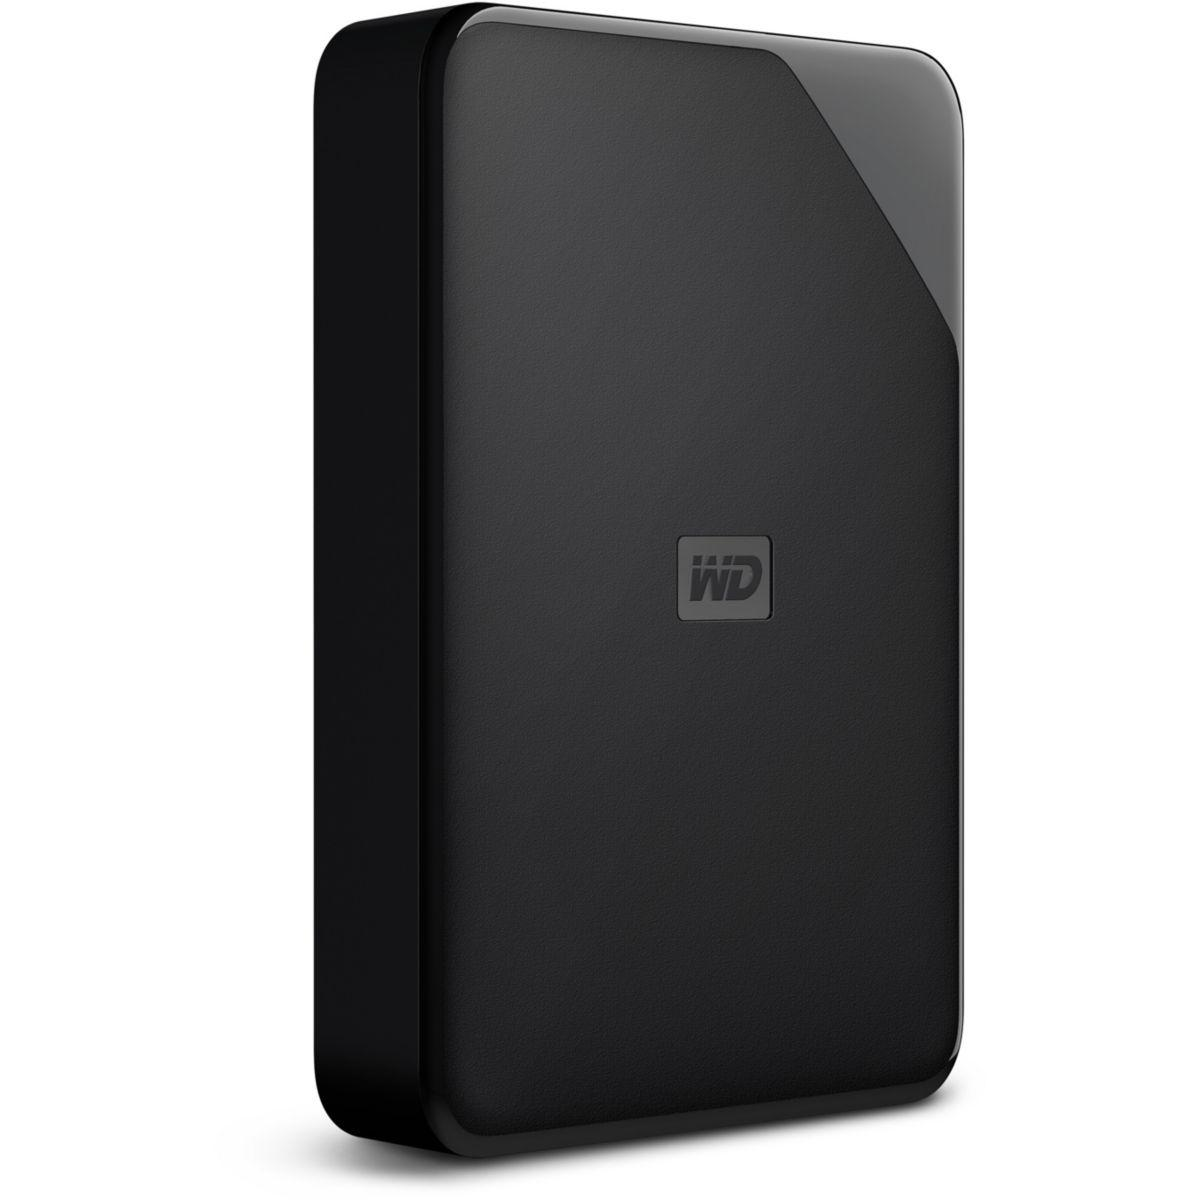 Disque dur externe western digital 2.5'' elements 4to usb3.0 - livraison offerte : code re